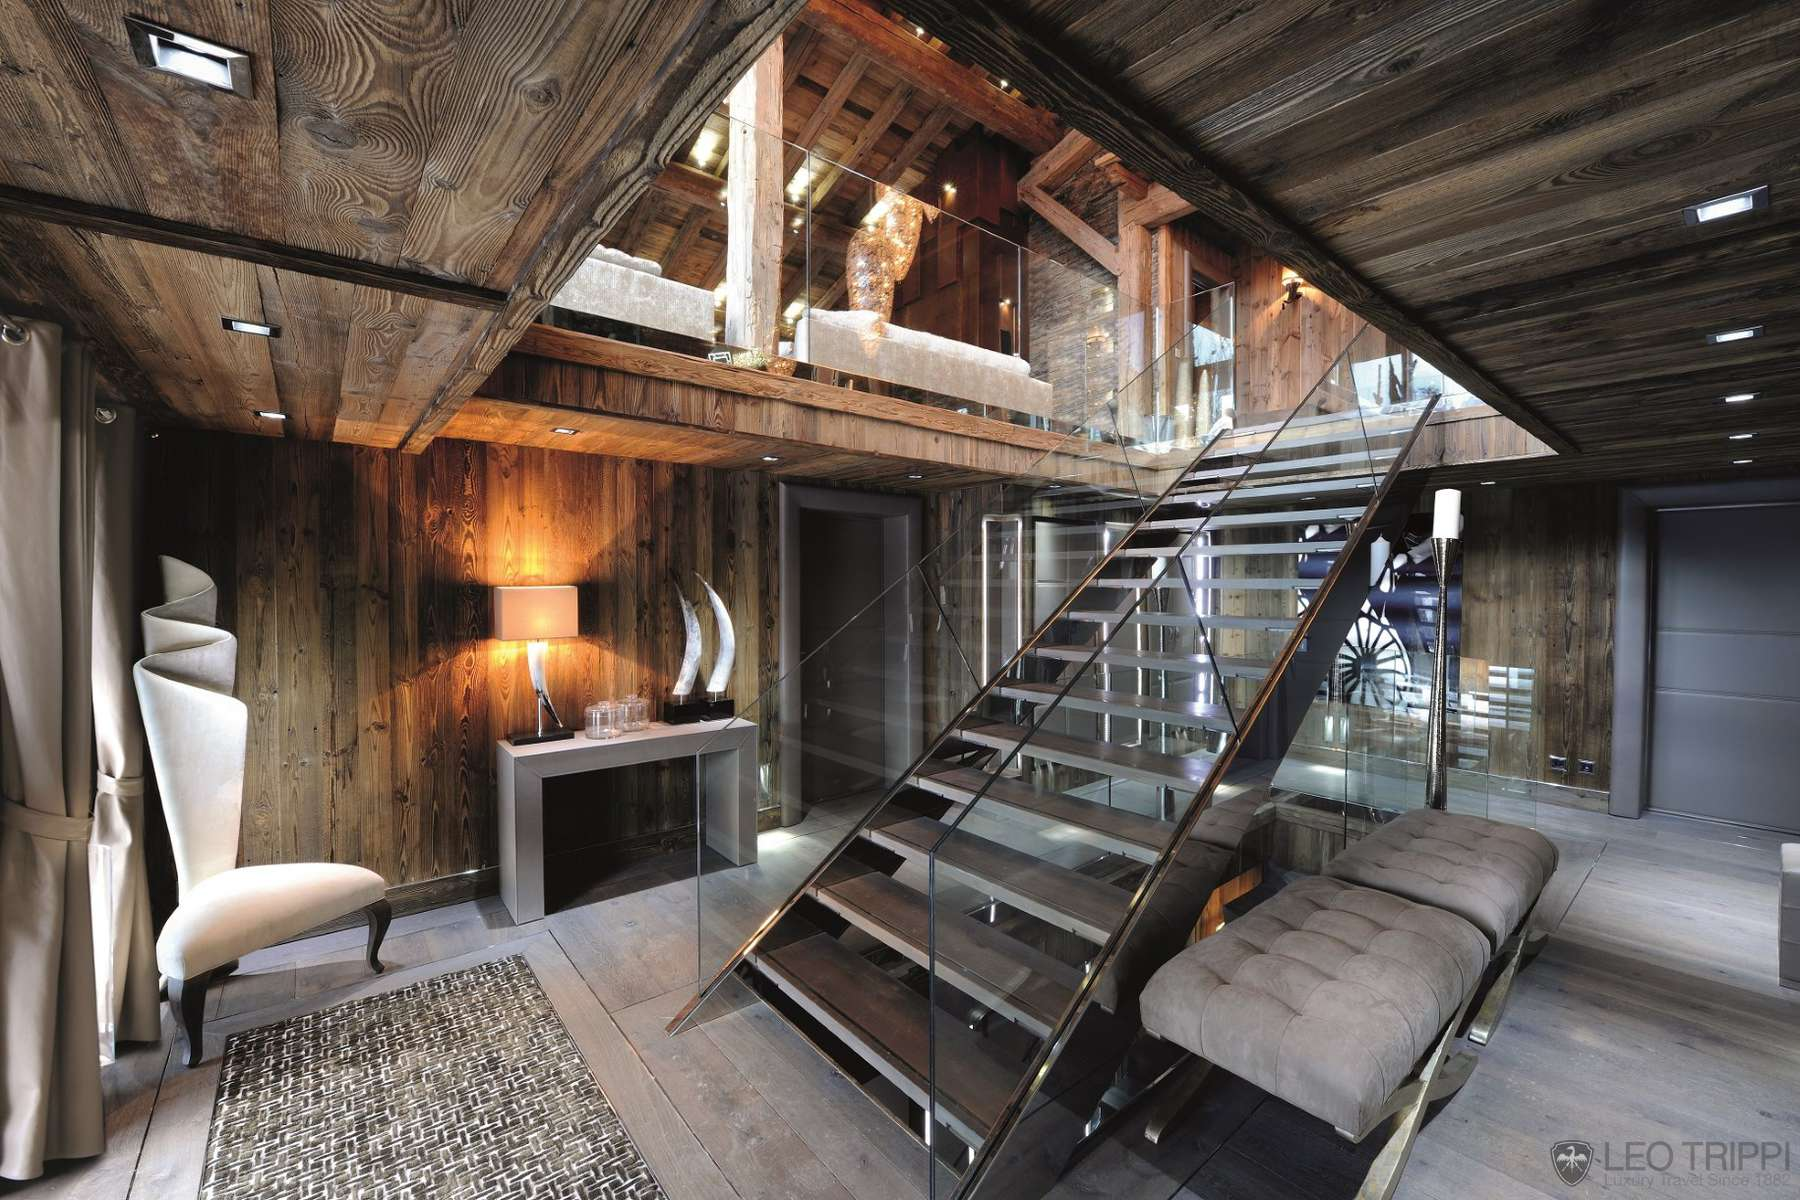 20-private-villa-MEGE2846-Megeve-Alps-French-France-stairs